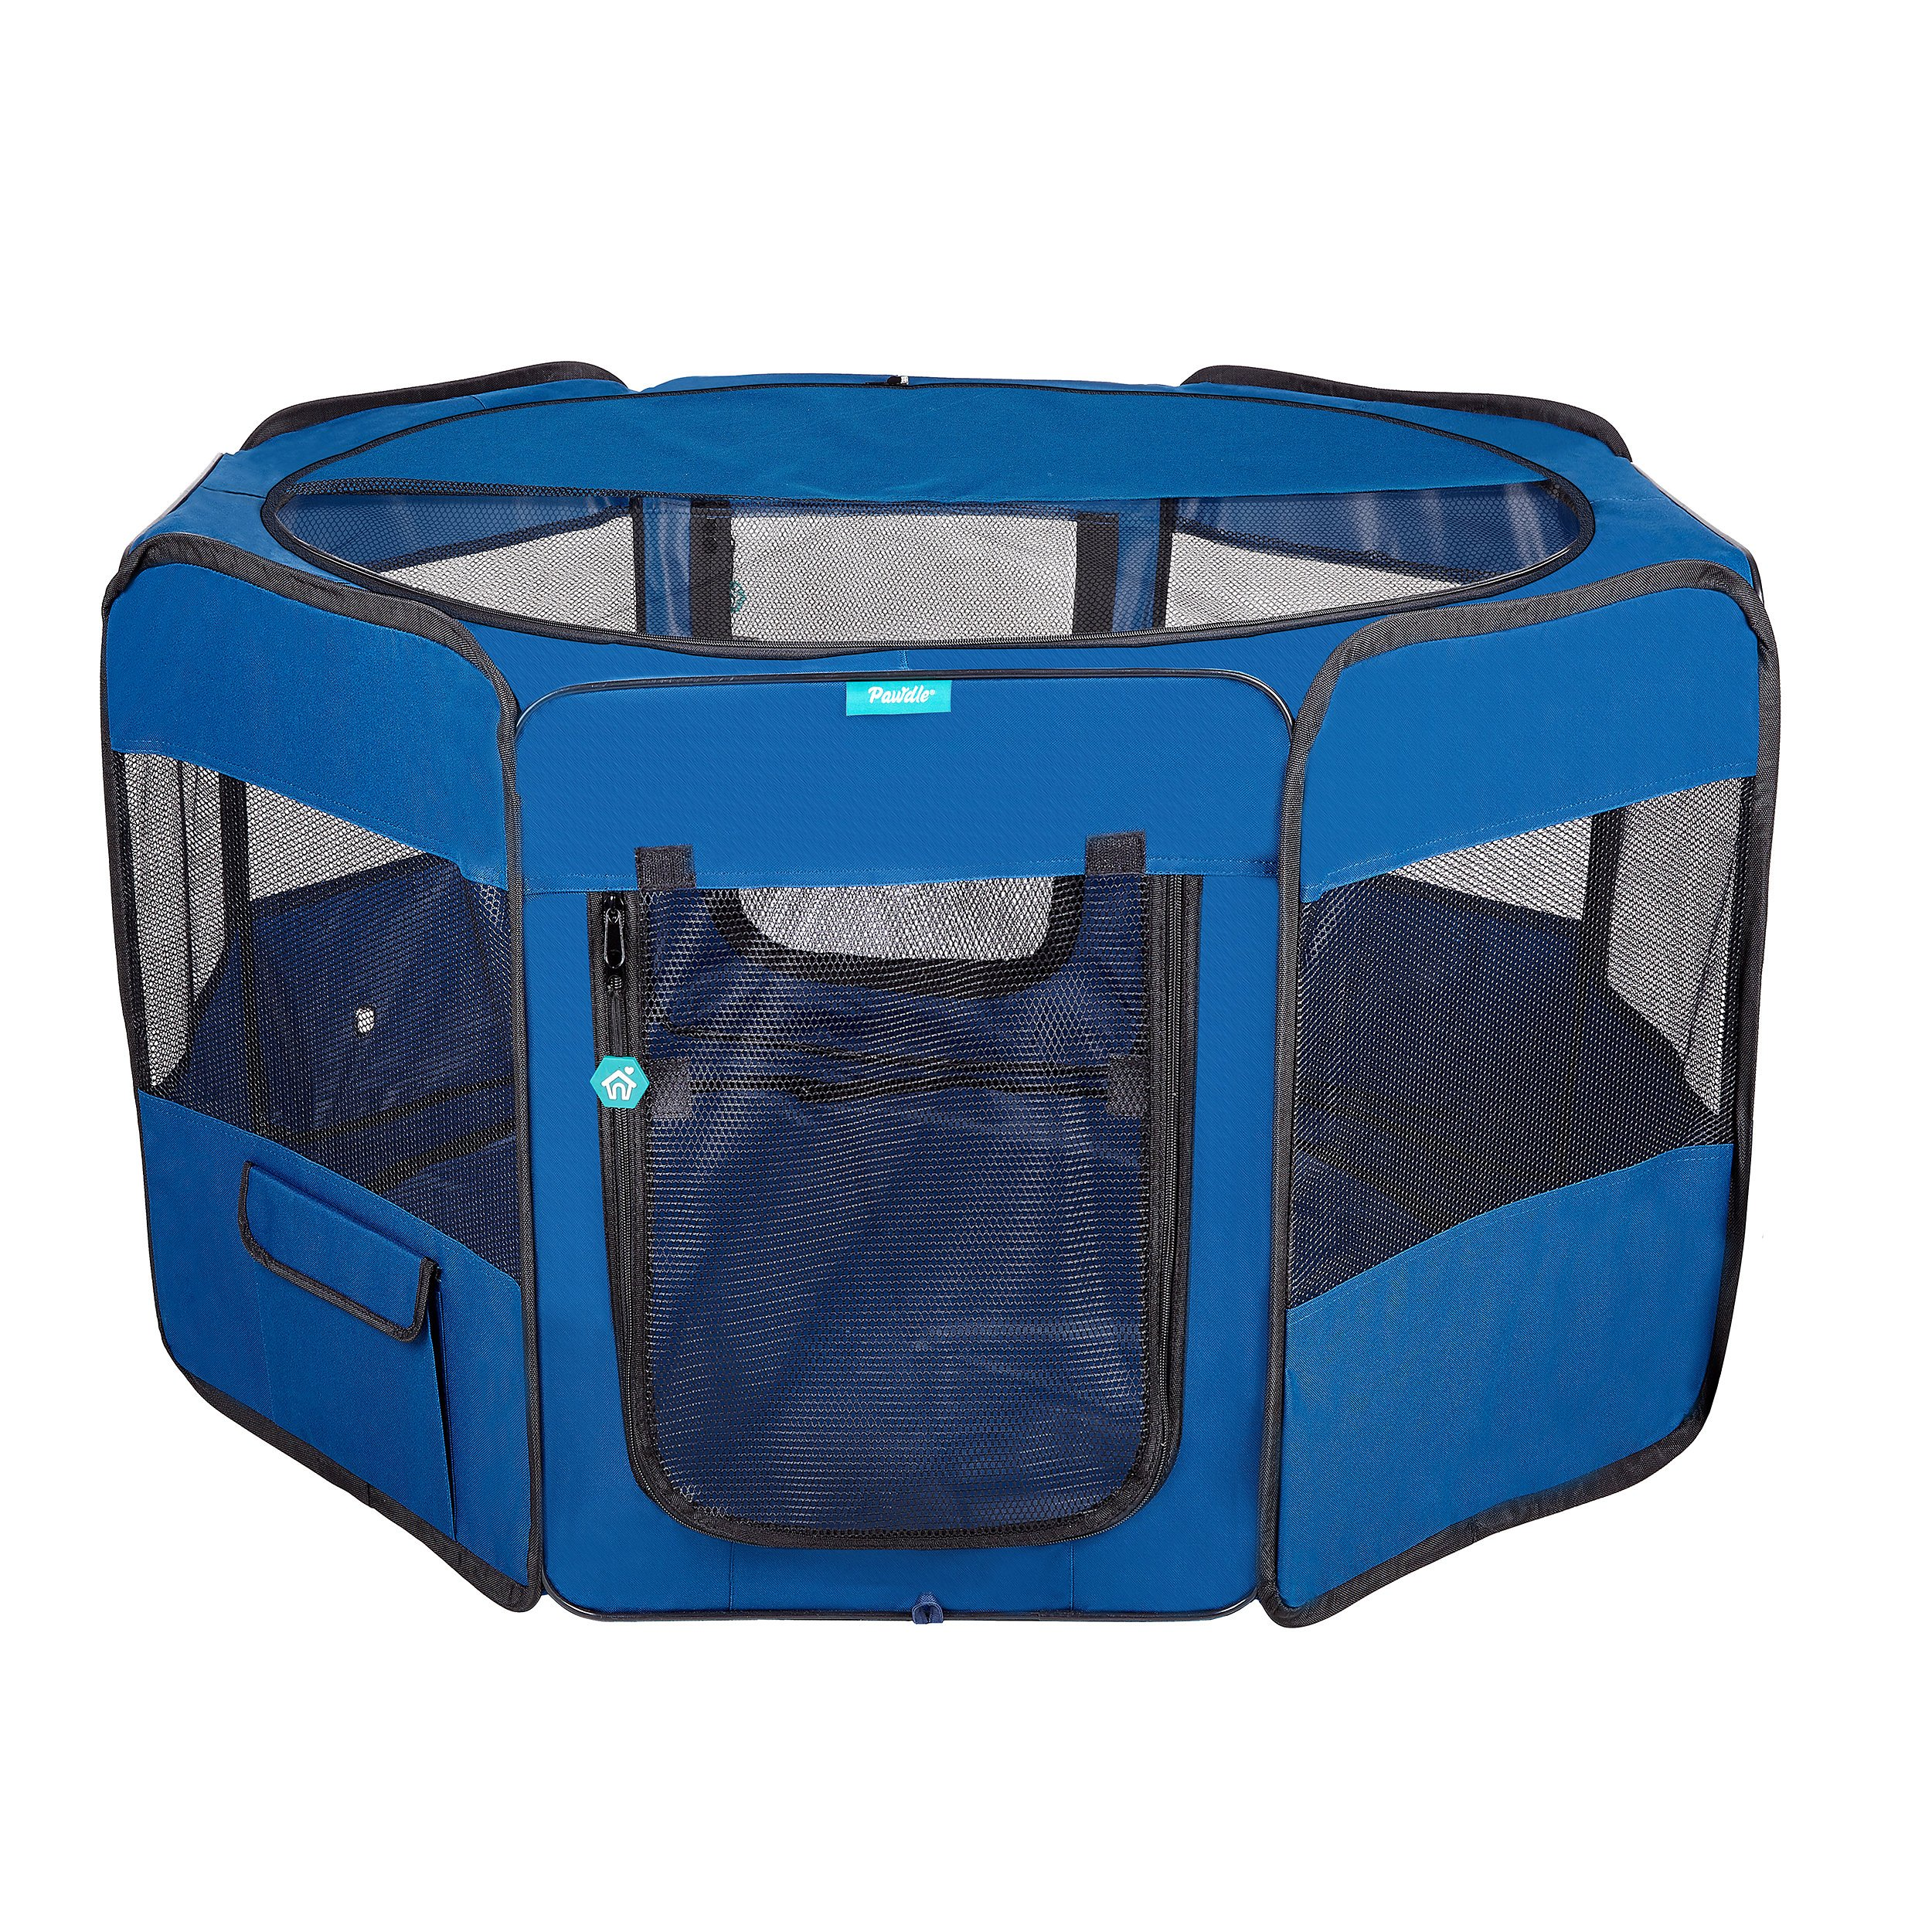 DELUXE PREMIUM Pet Dog Playpen Portable Soft Dog Exercise Pen Kennel with Carry Bag for Dogs, Cats, Kittens, and all Pets (Large, Blue)